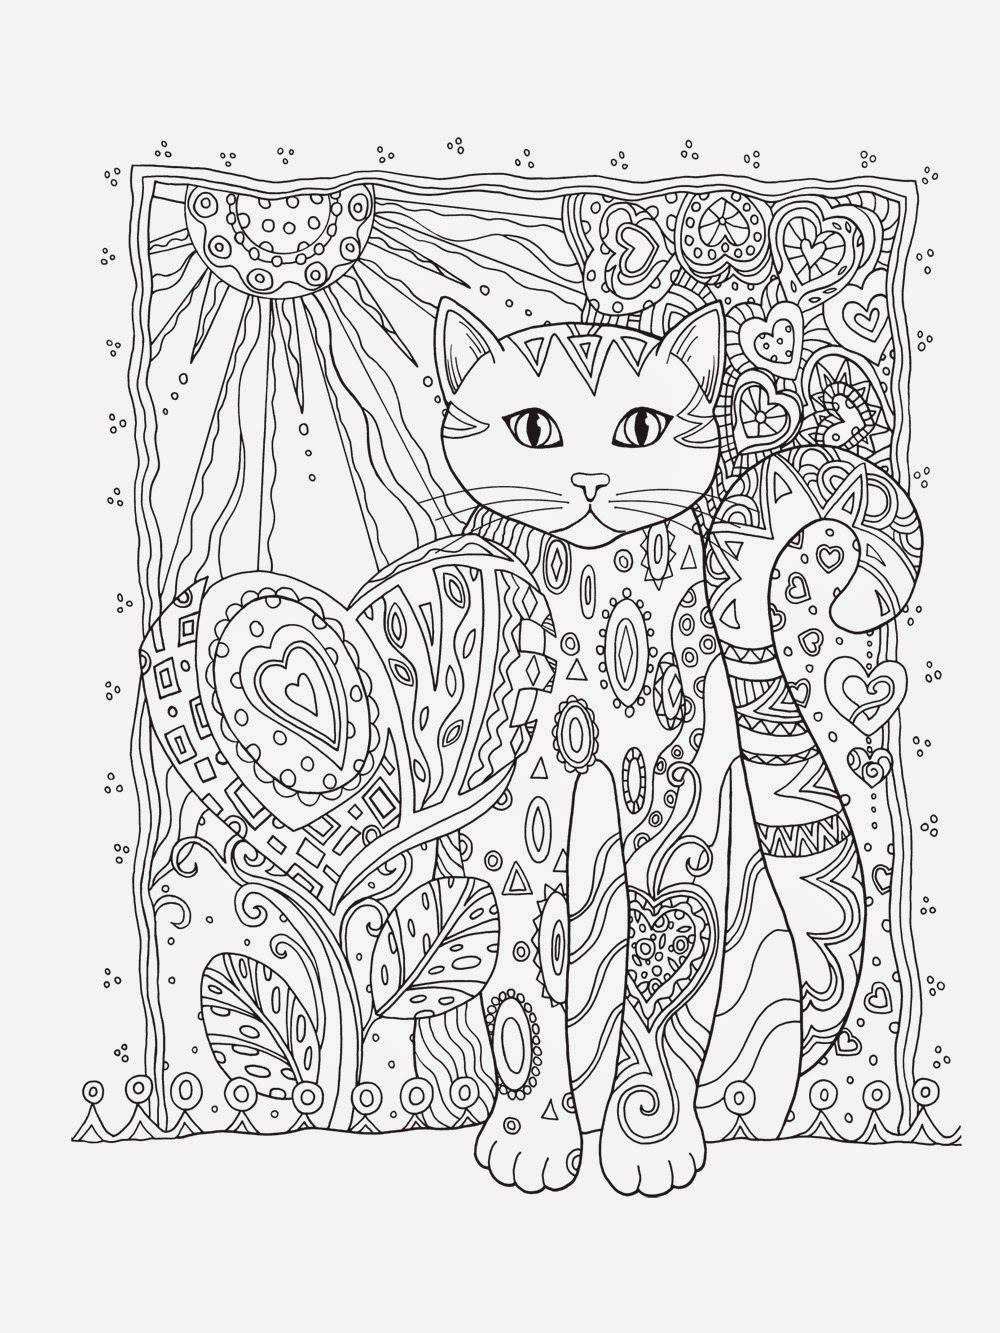 art therapy coloring pages cat - photo#8